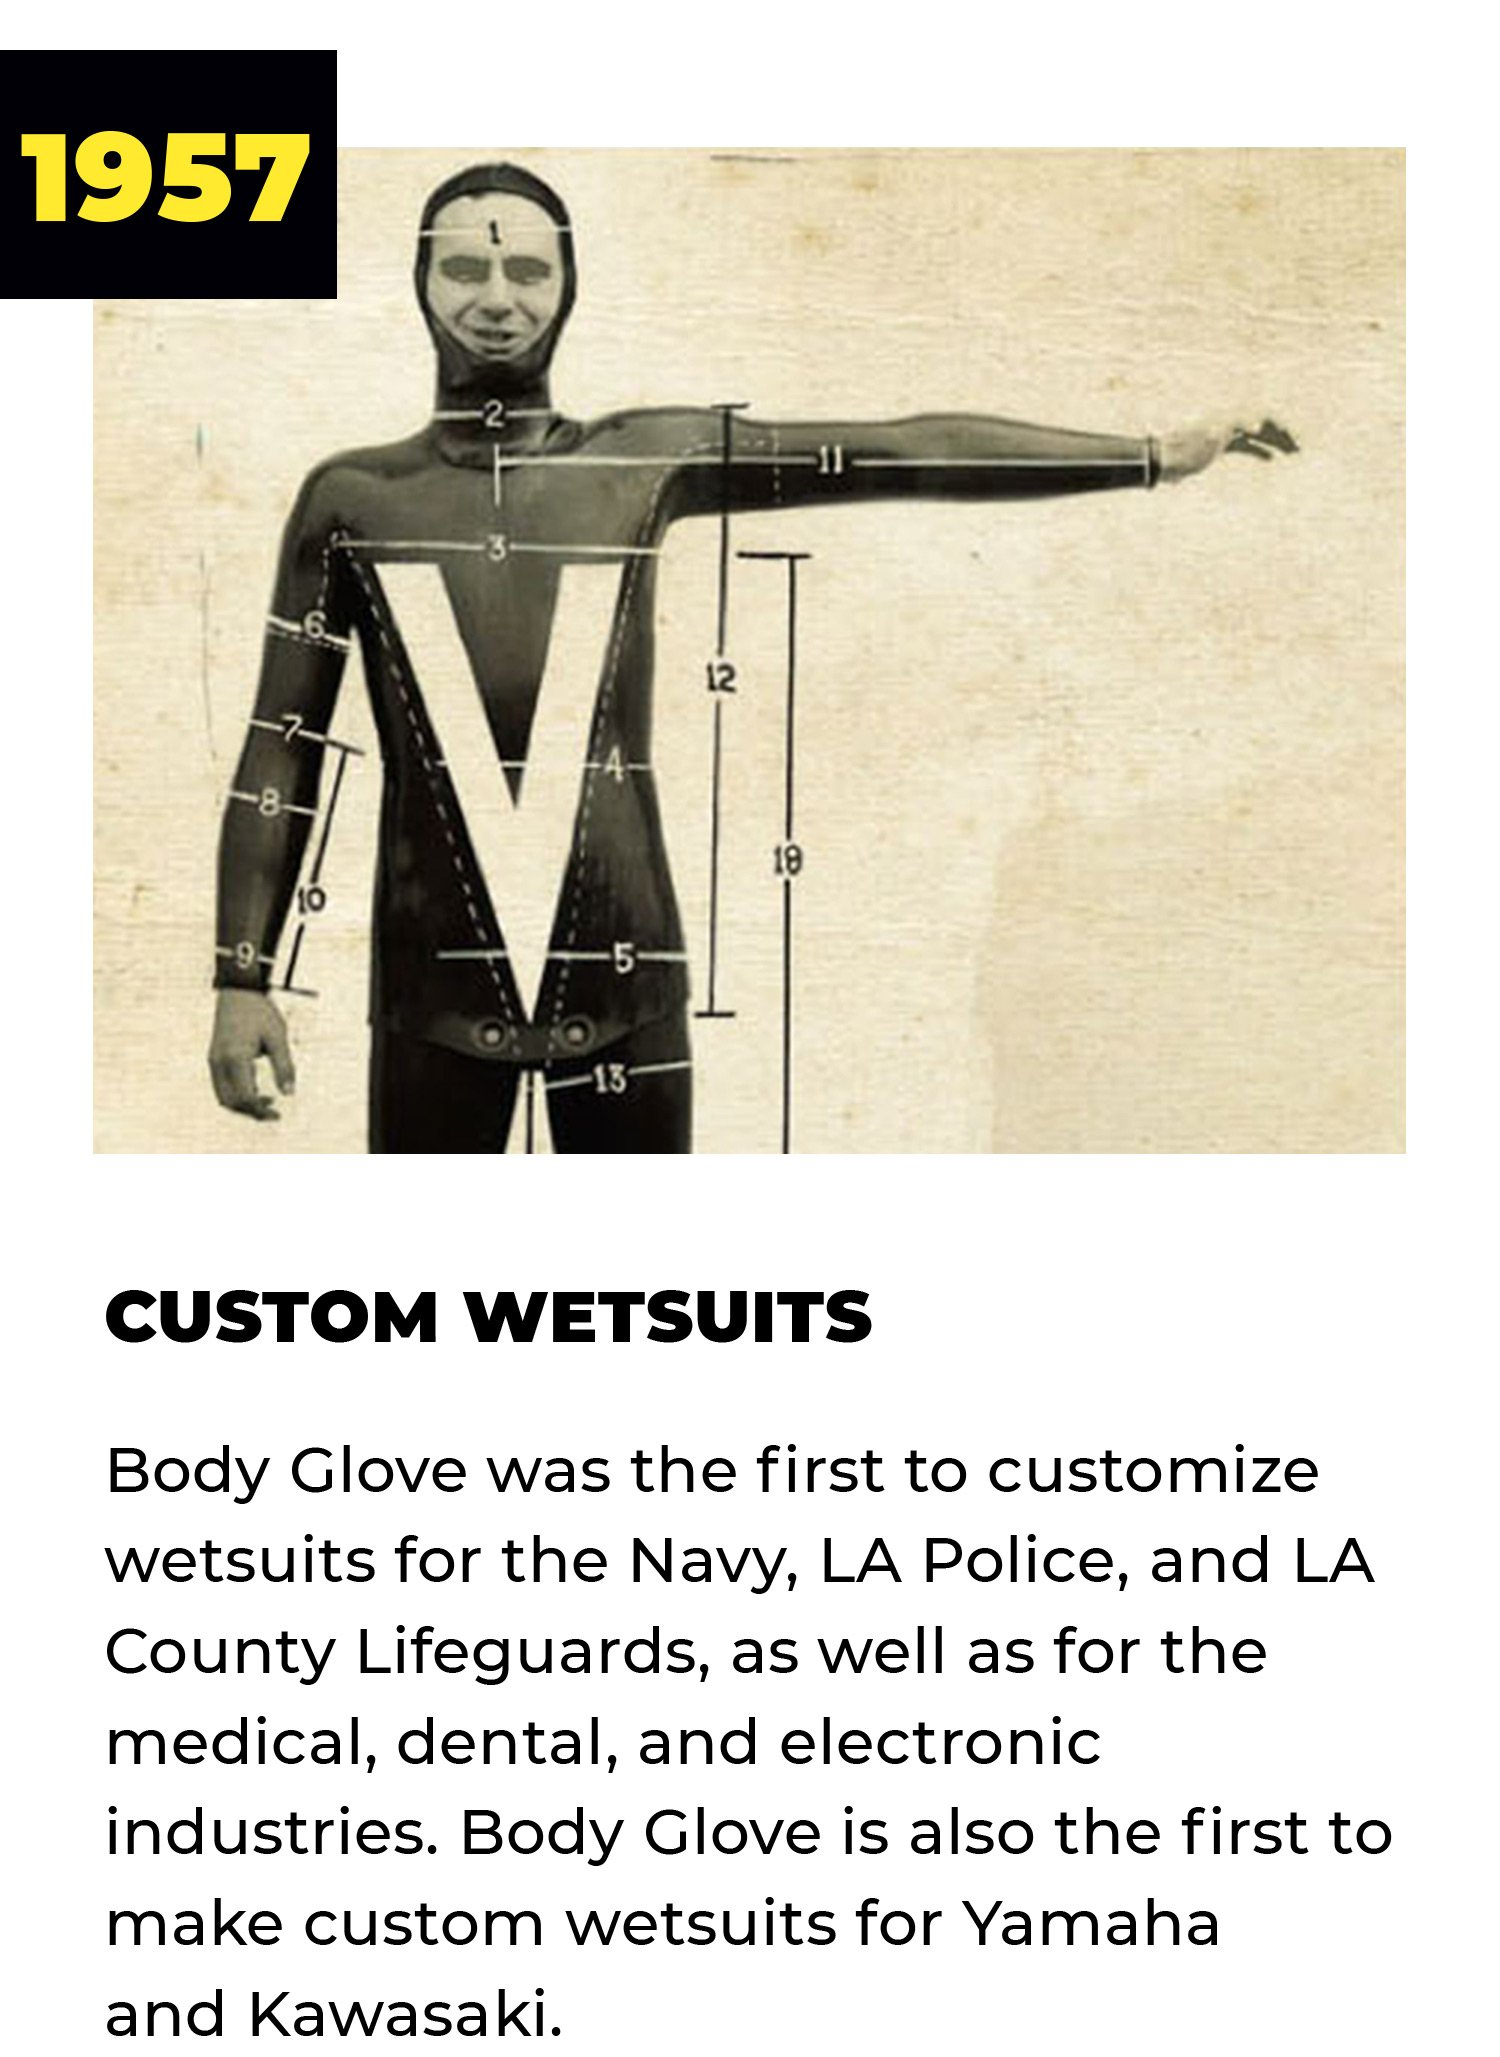 1957 | Custom Wetsuits | Body Glove was the first to customize wetsuits for the Navy, LA Police and LA County Lifeguards, as well as for the medical, dental, and electronic industries. Body Glove is also the first to make custom wetsuits for Yamaha and Kawasaki.